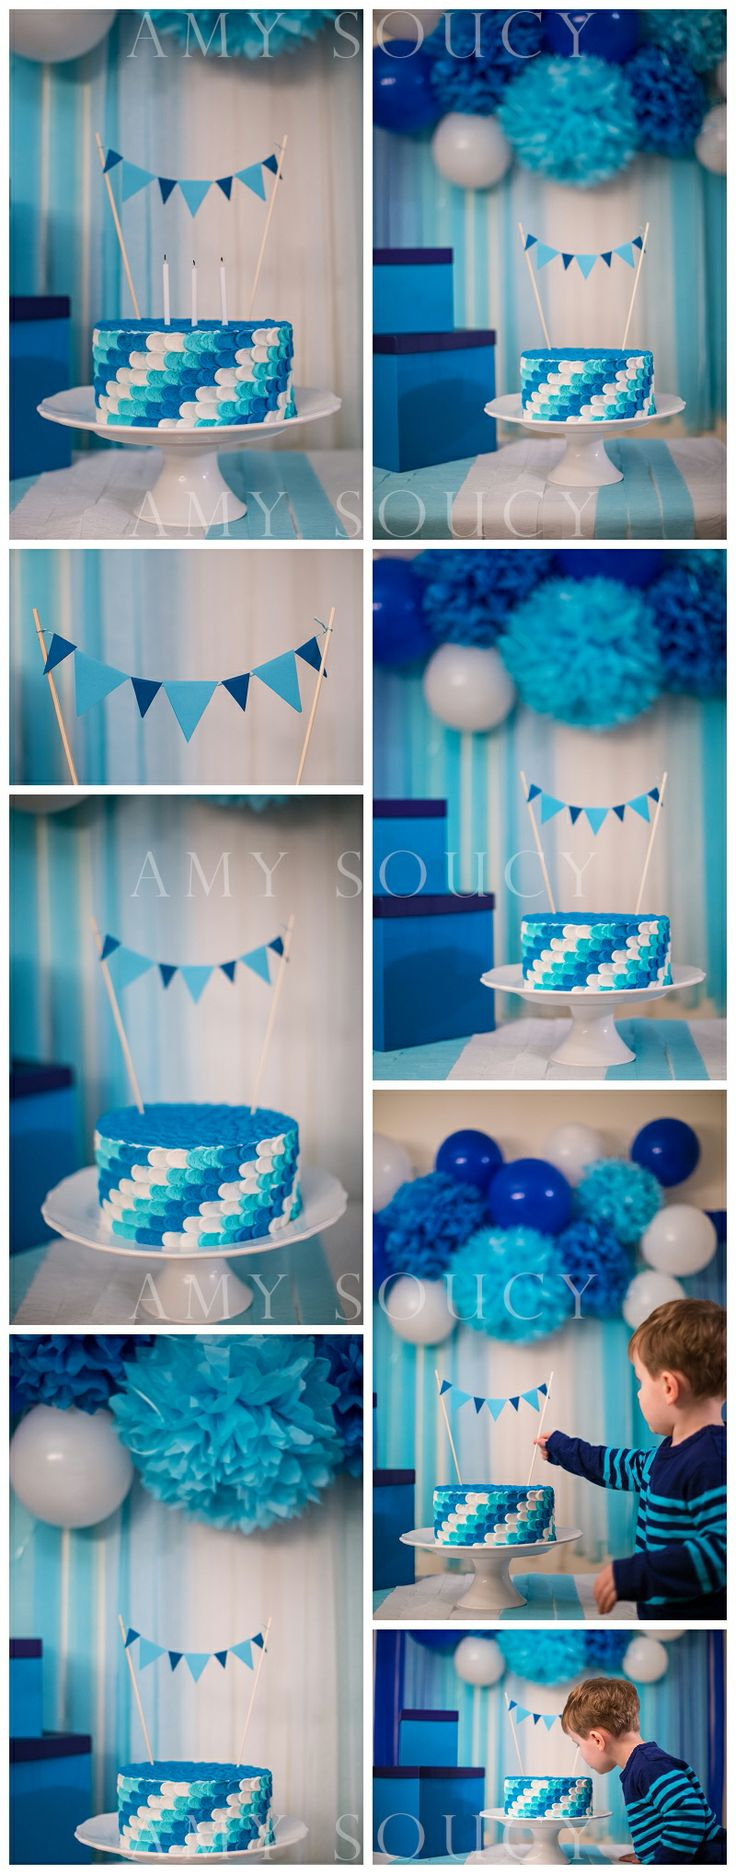 Toddler Boy Blue Birthday Cake. Ombre Blues. asoucy.com